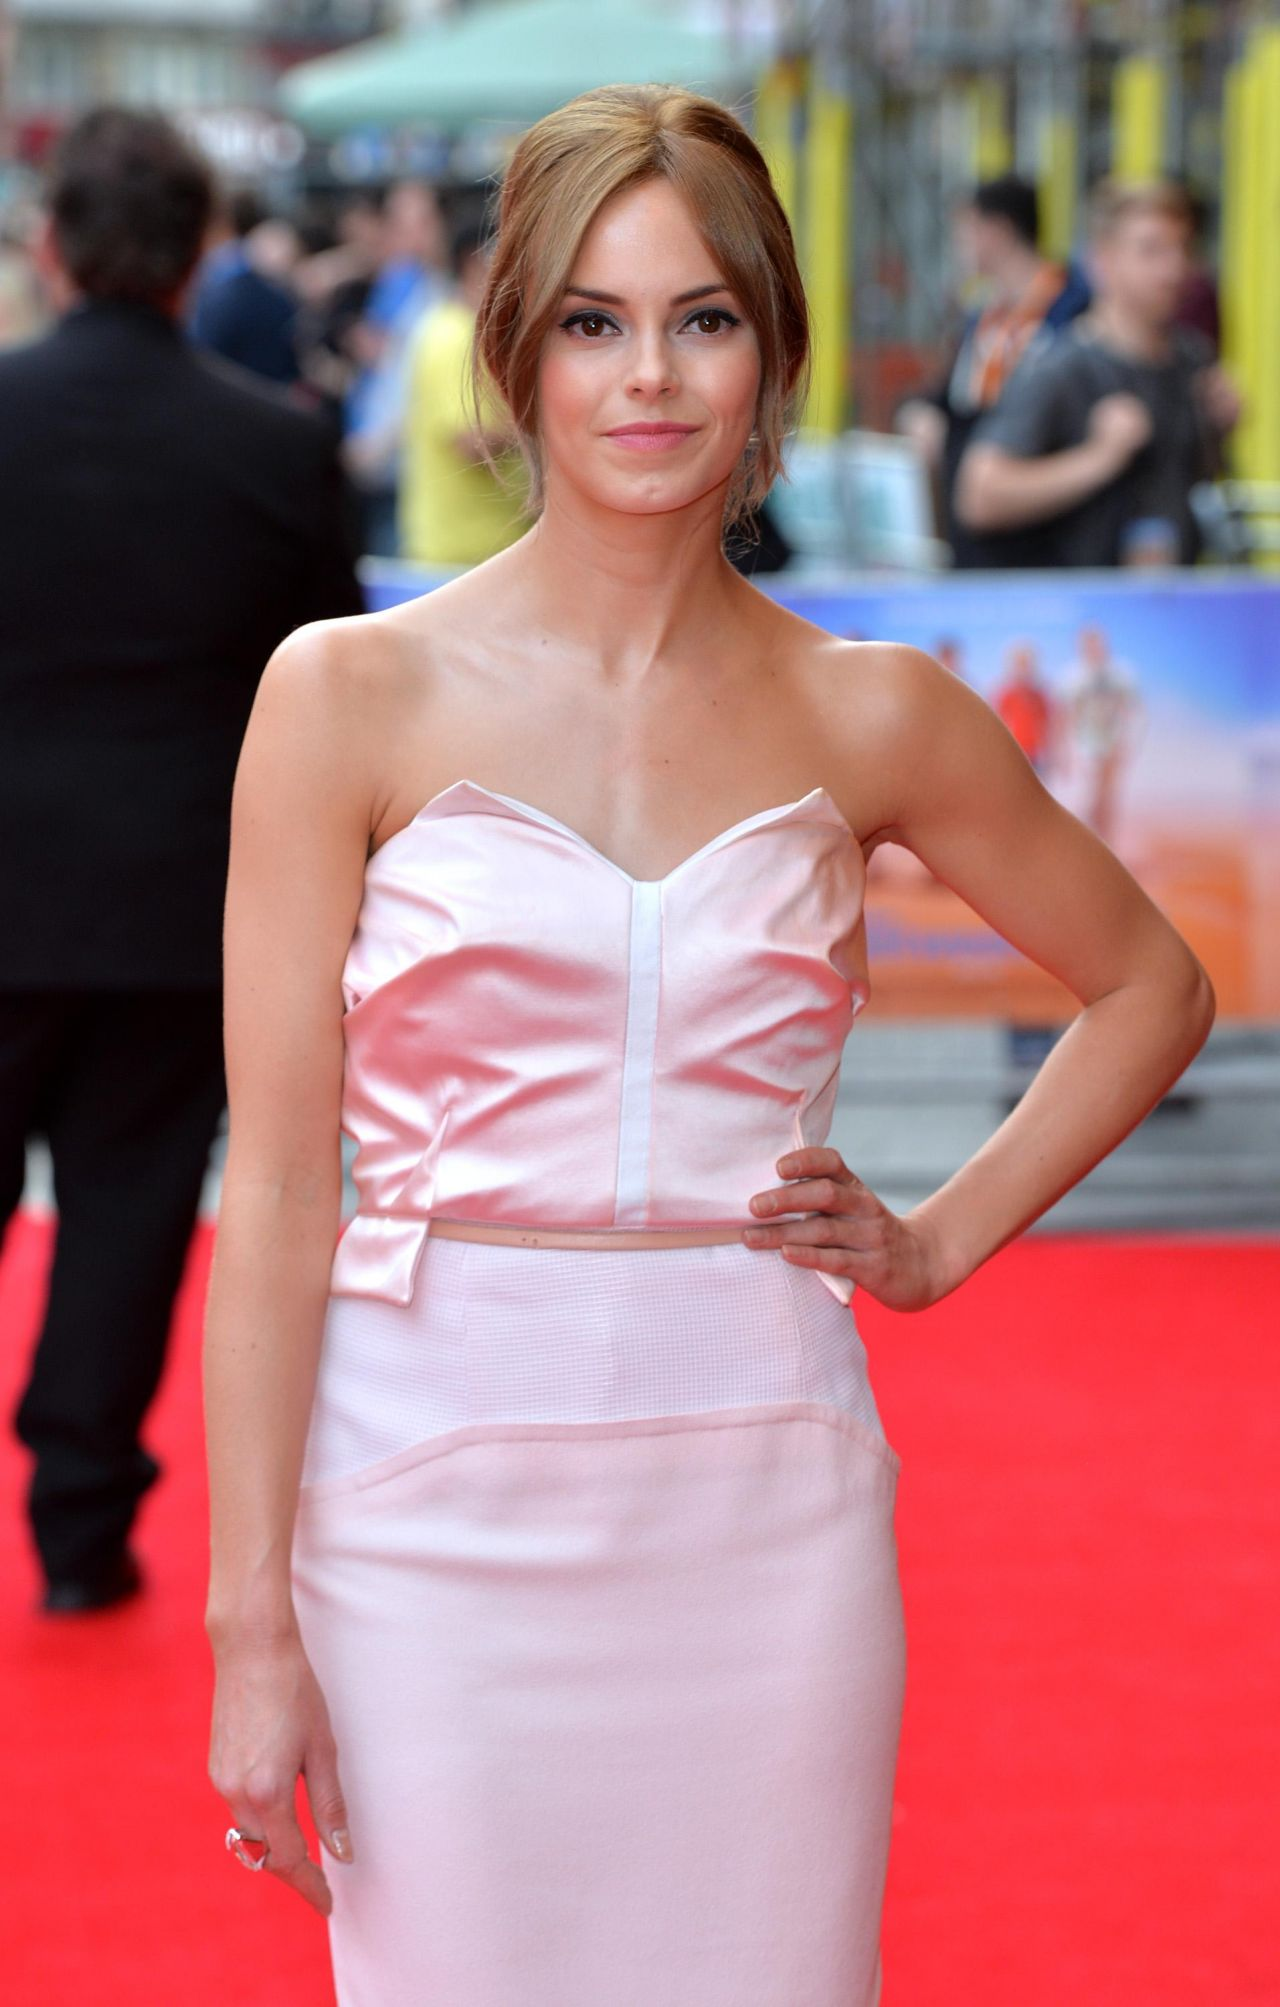 Hannah Tointon - 'The Inbetweeners 2' Premiere in London